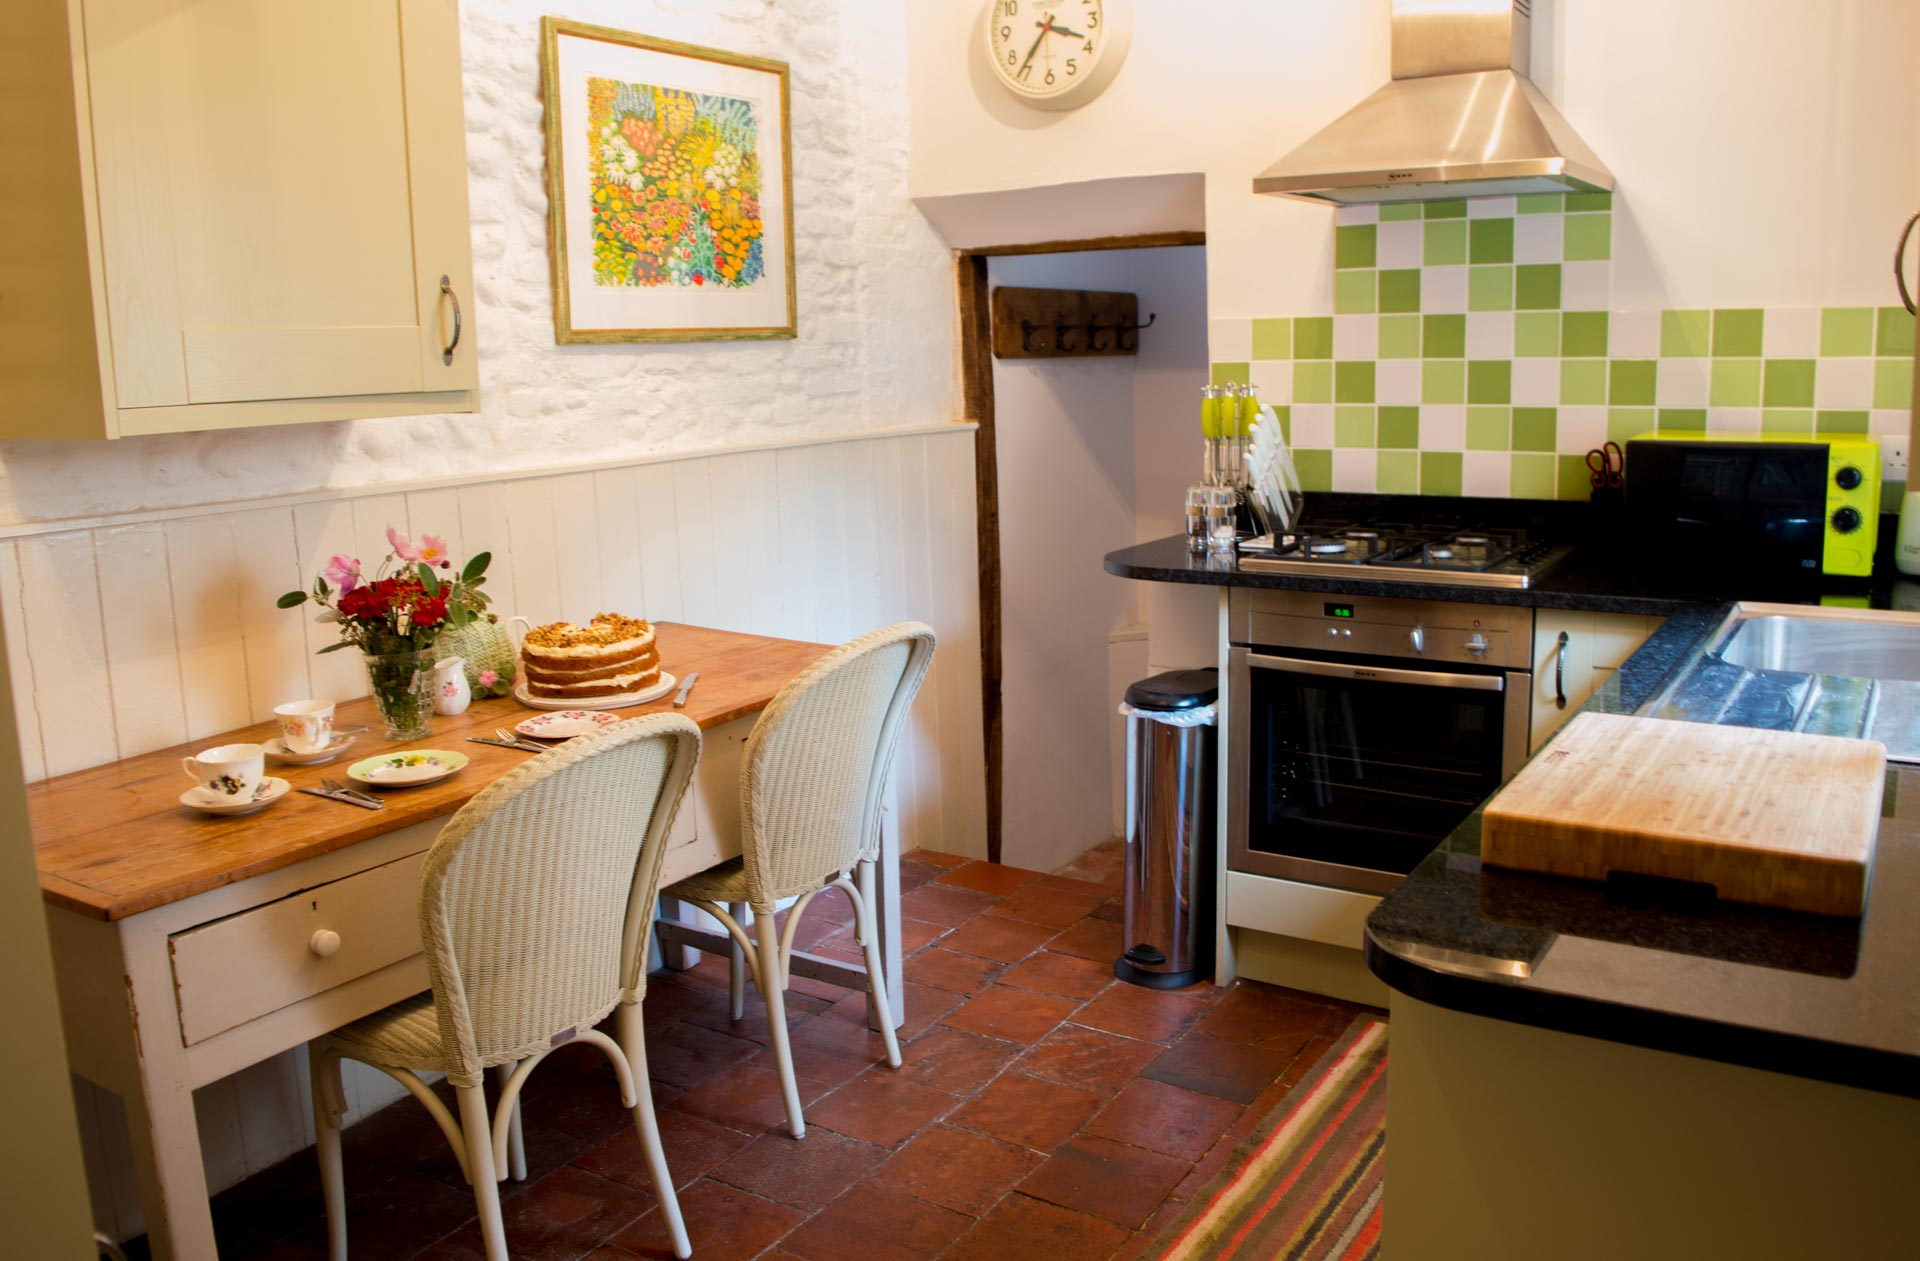 Family kitchen and table.